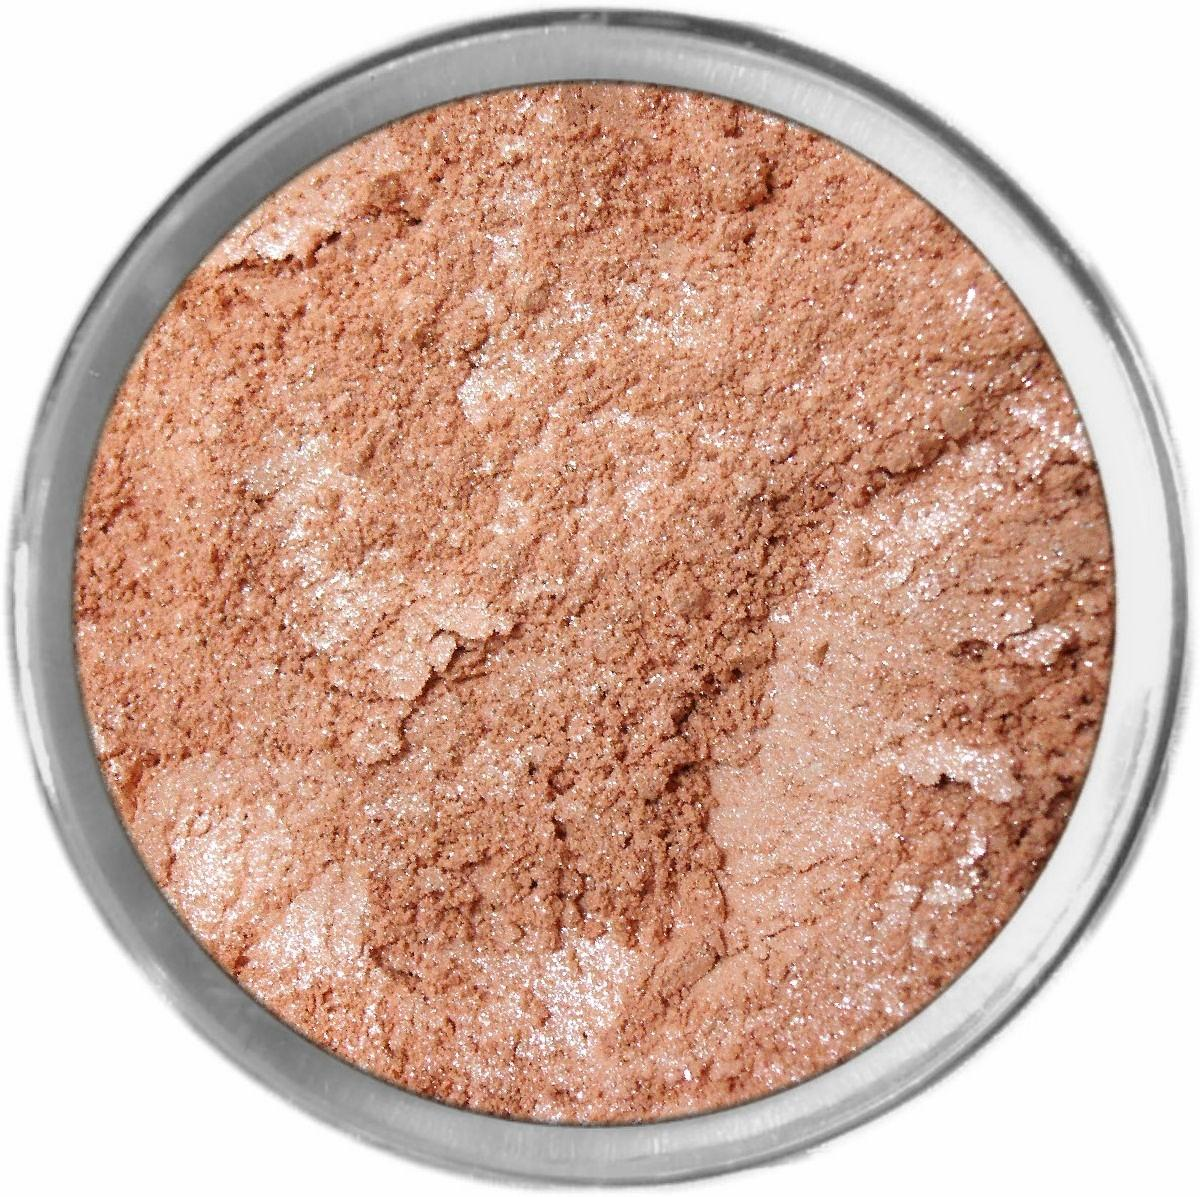 BABY FACE loose powder mineral multi-use color makeup bare earth pigment minerals